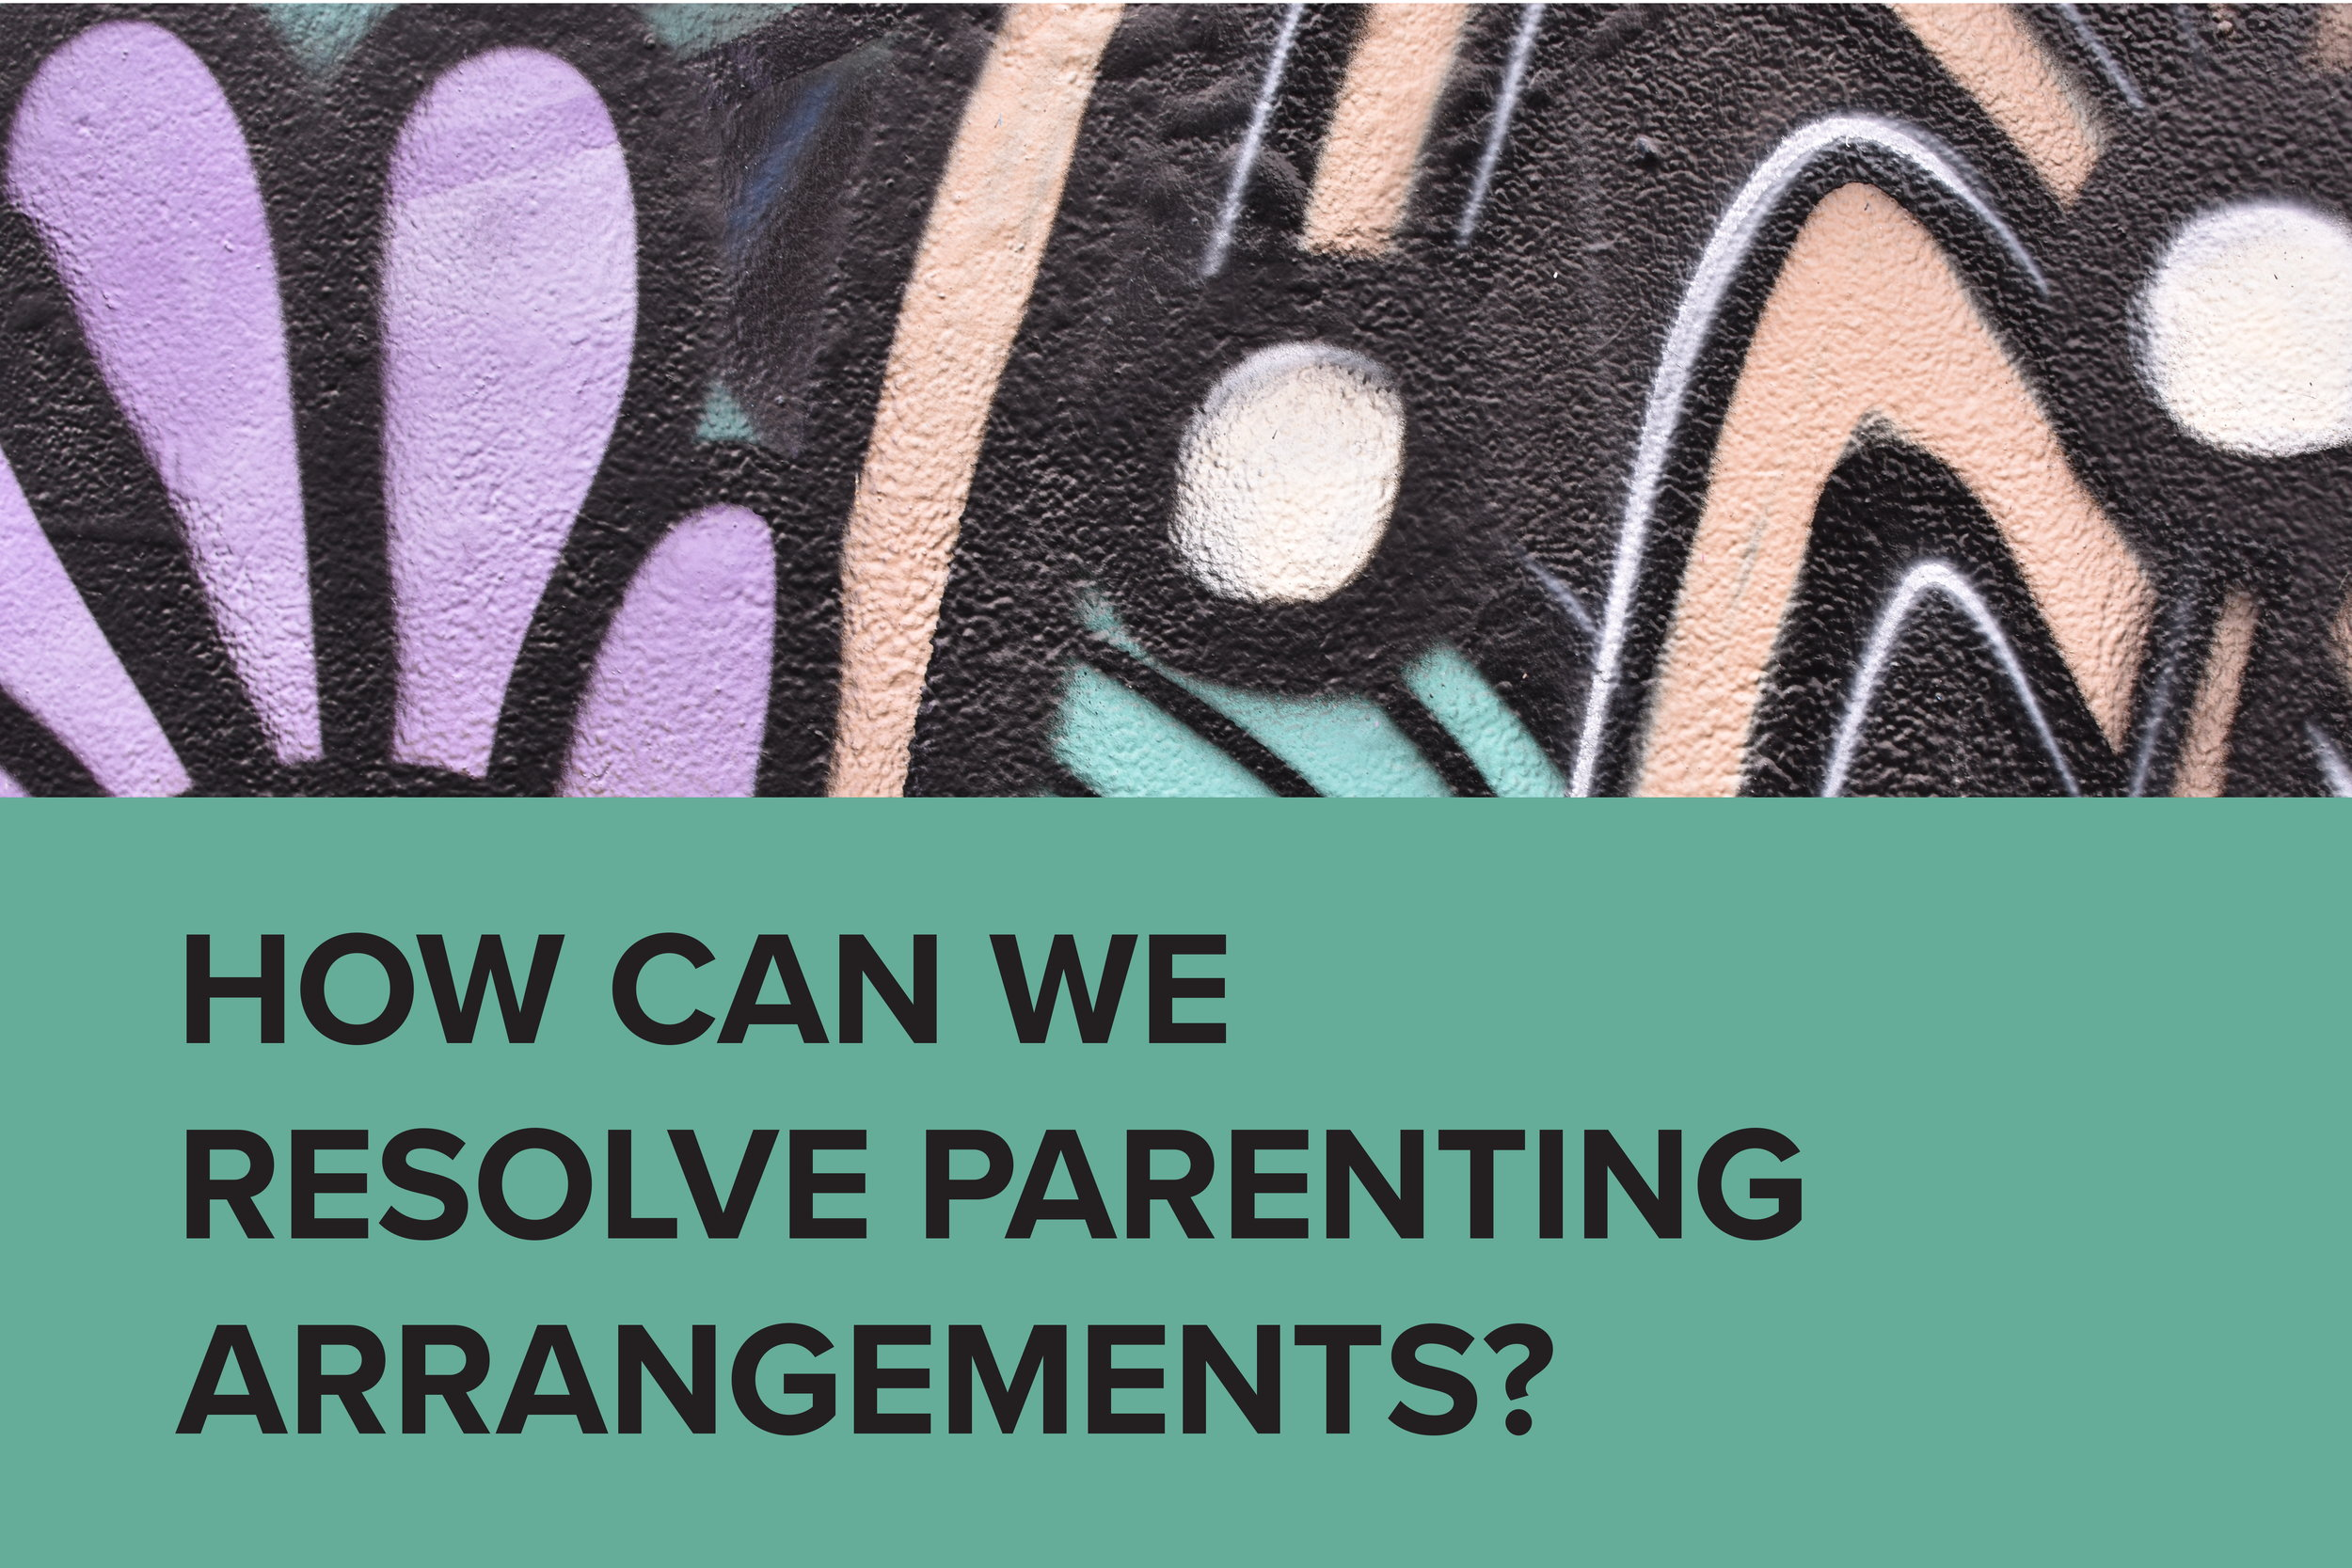 For some families, arrangements are working well and all that is needed is for us to document the agreement.  Other families might need some extra help to reach an agreement.  We offer guidance and legal advice, including the option of involving child-focused specialists to assist your family. For example, mediation or counselling or the forum of collaborative practice are excellent options which support the co-parenting relationship and work towards achieving the most positive and sustainable outcomes for your family.  Whatever the case, we can help you with the most appropriate pathway towards agreement and avoid court imposed decisions.